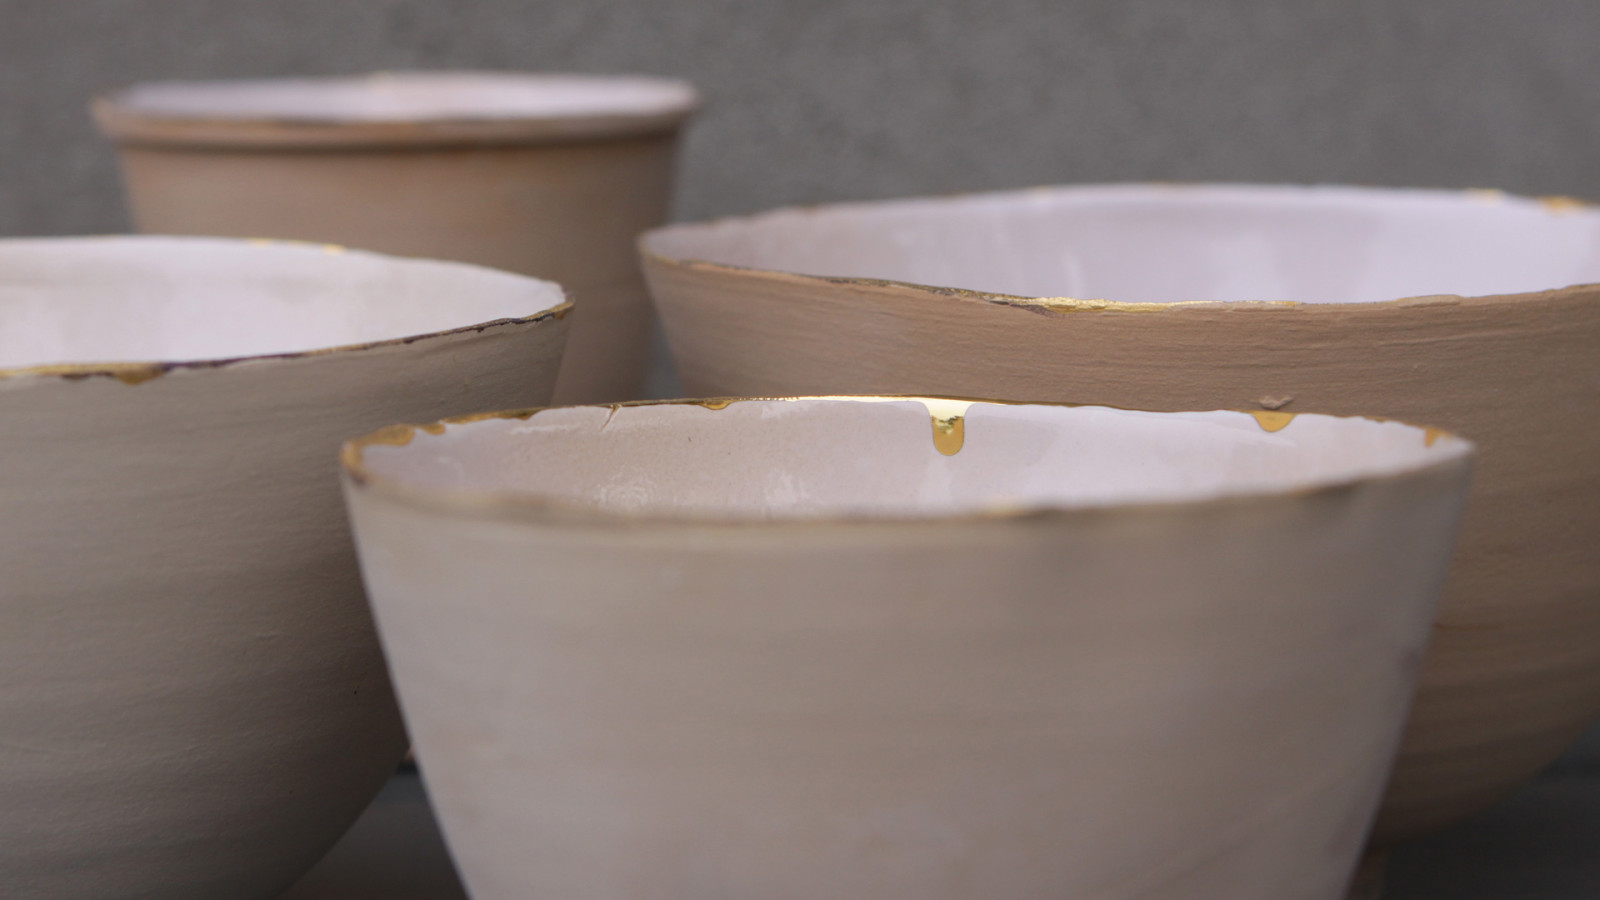 Gorgeous pastel ceramics: handmade by studio All Es from the Netherlands